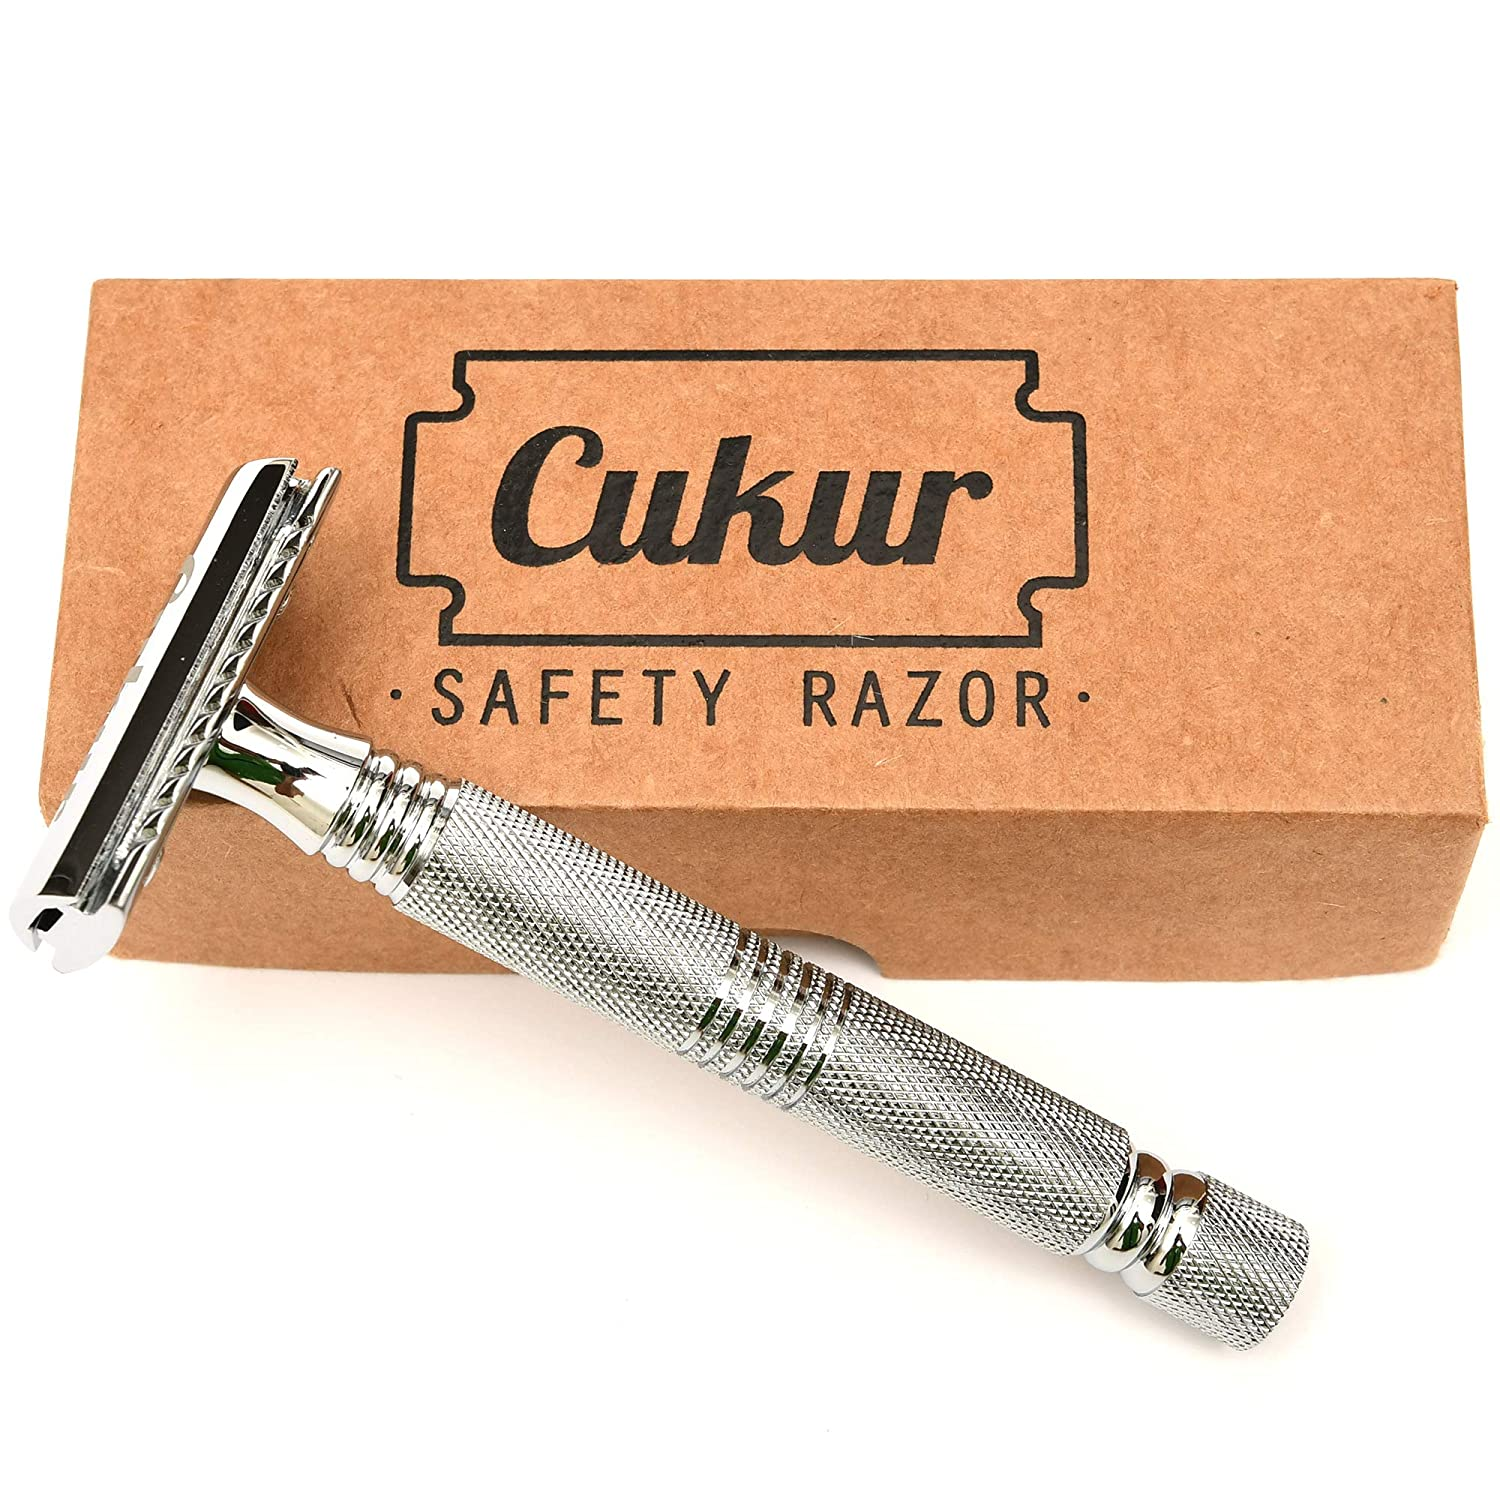 CUKUR Double Edge Safety Razor + 5 blades (Long handle)